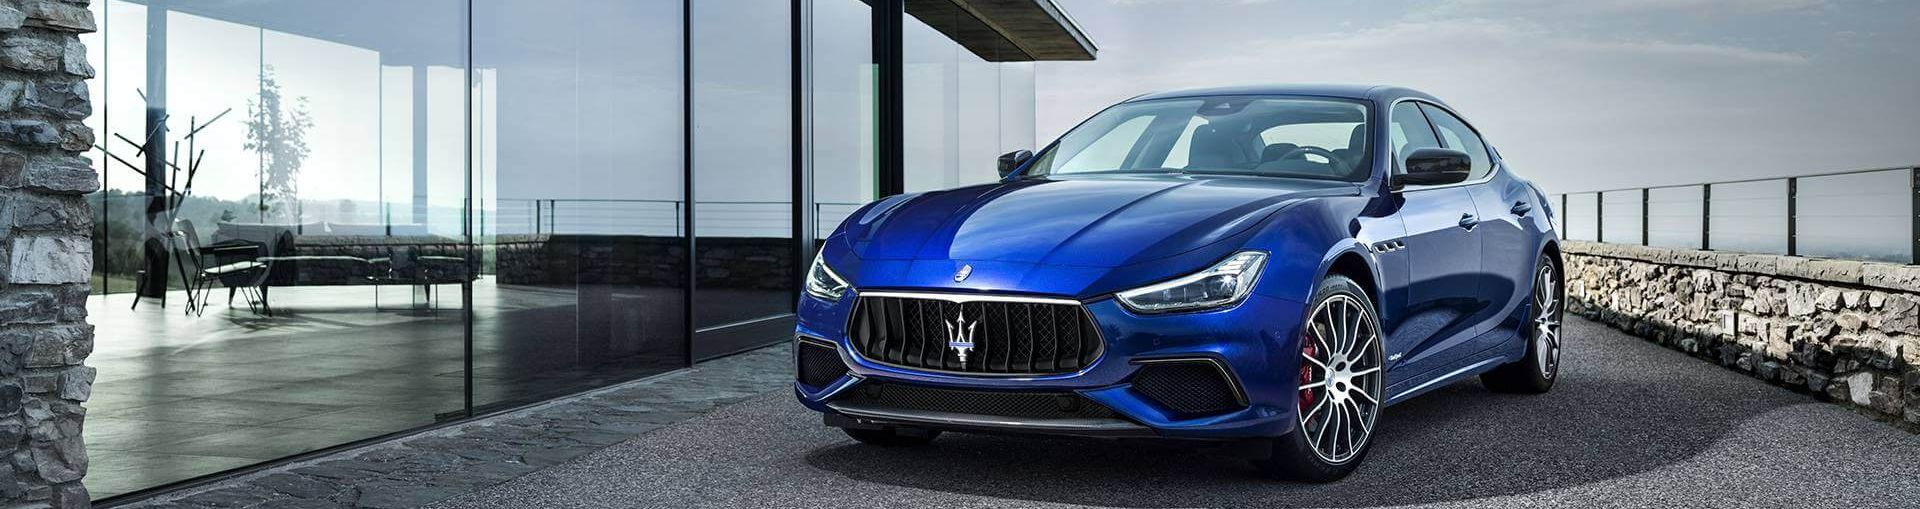 2018 maserati ghibli for sale near san antonio tx maserati of austin. Black Bedroom Furniture Sets. Home Design Ideas